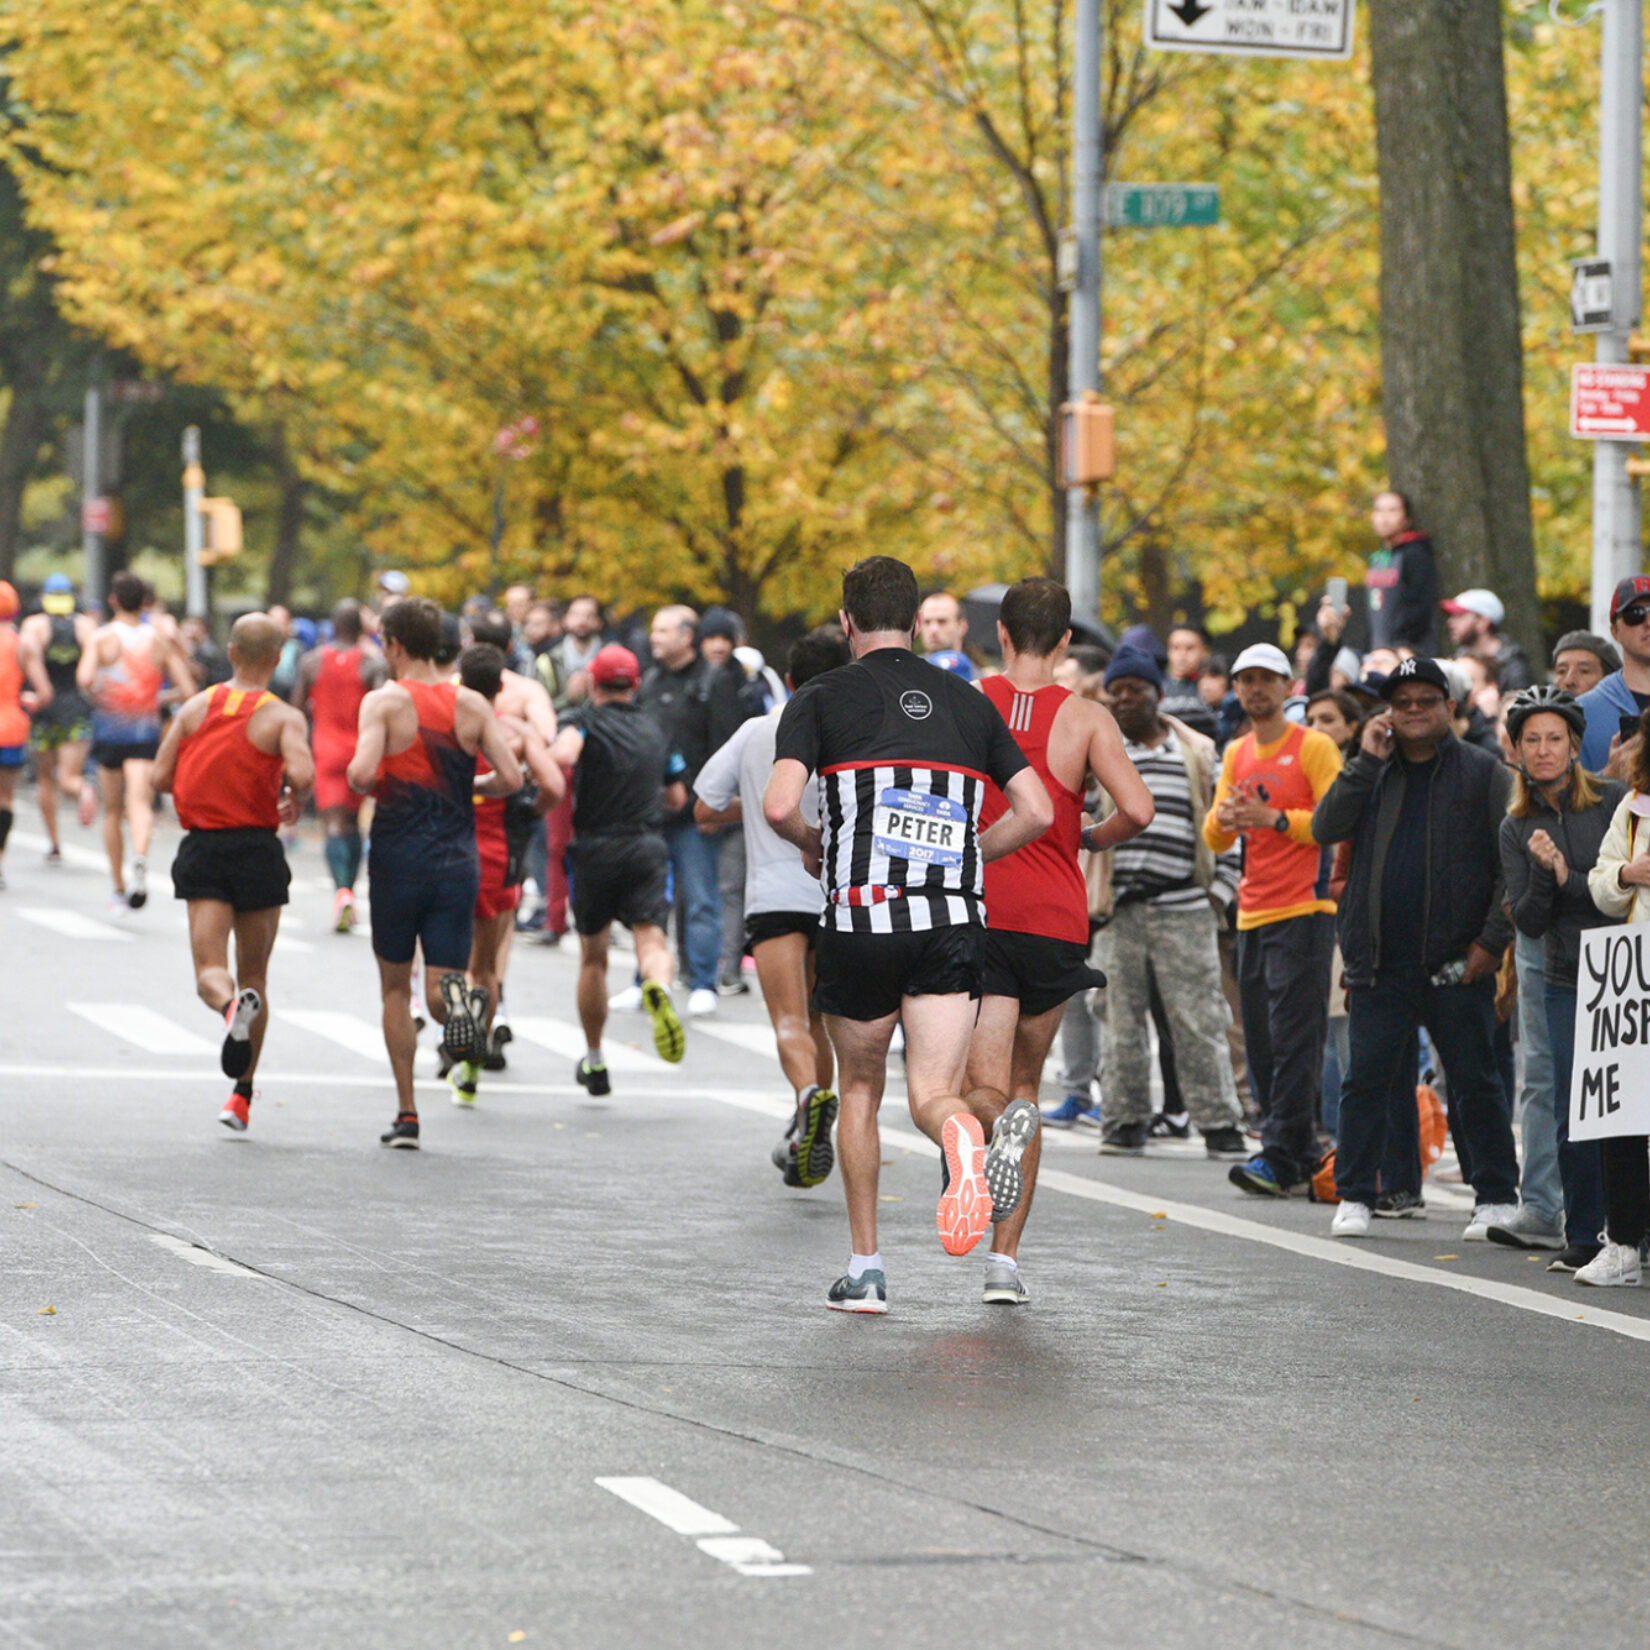 Runners on the roadway with crowds cheering them on